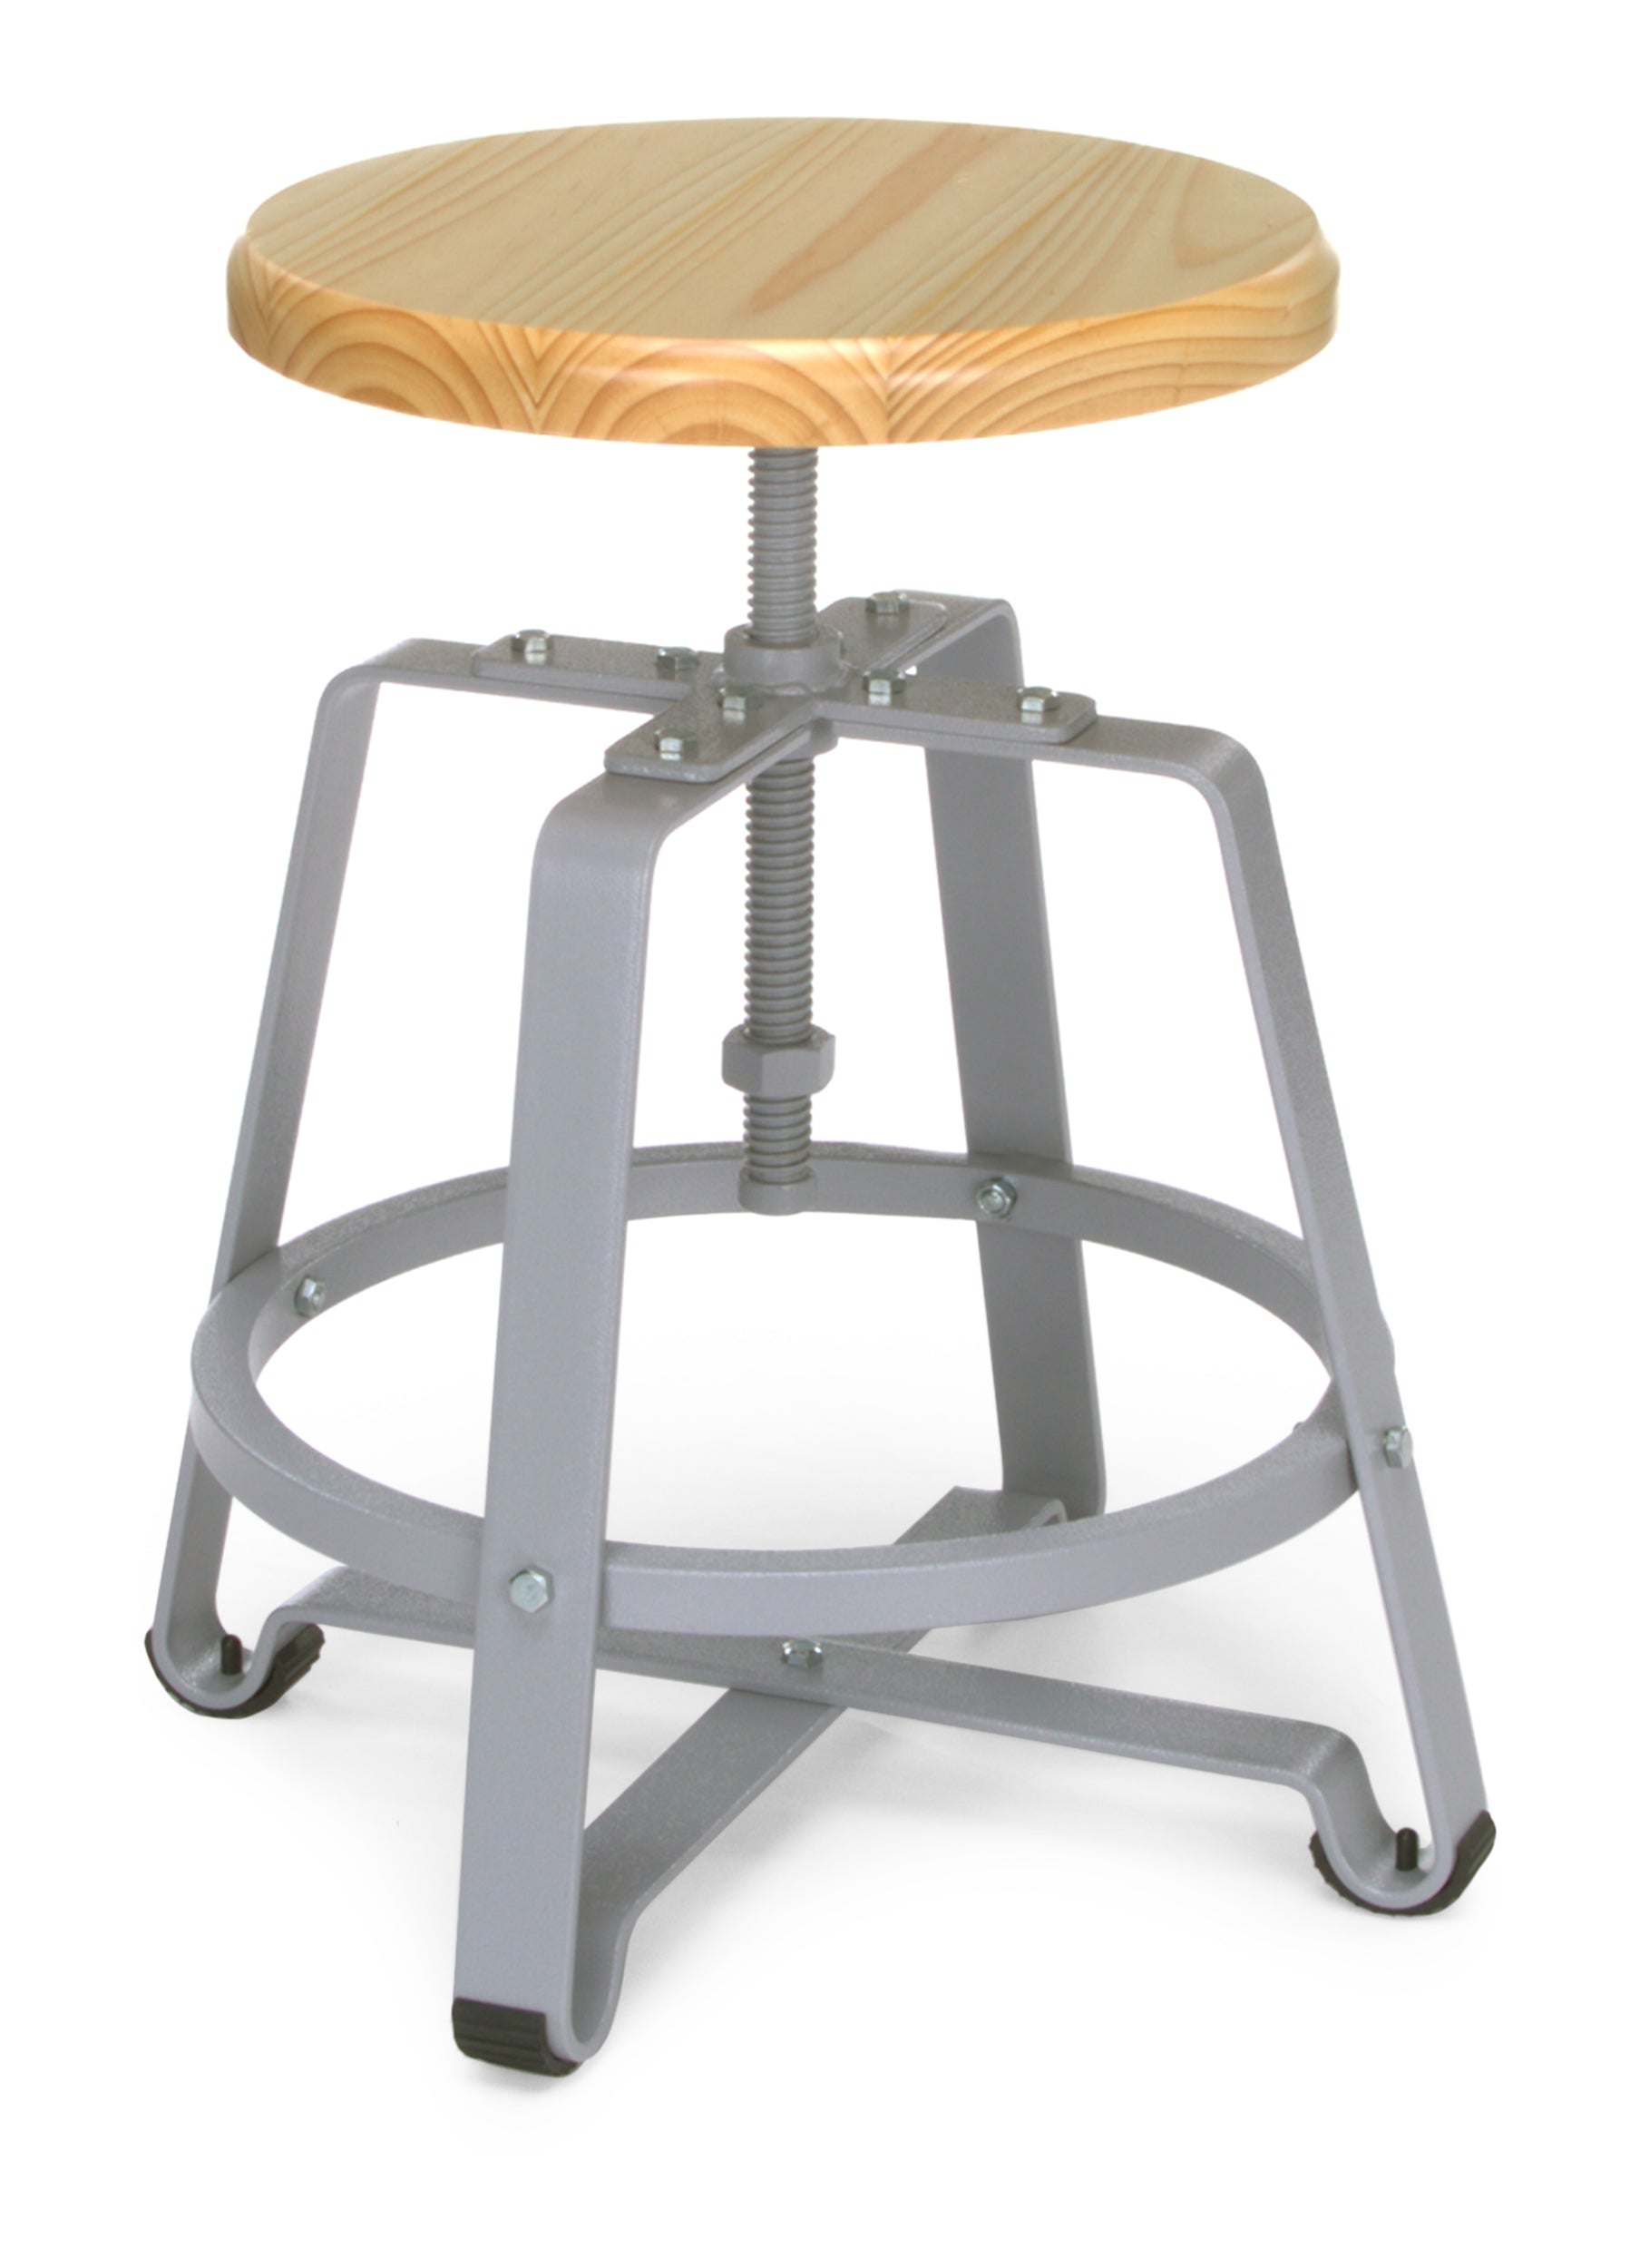 Ofminc Model 921 Edure Series Small Stool